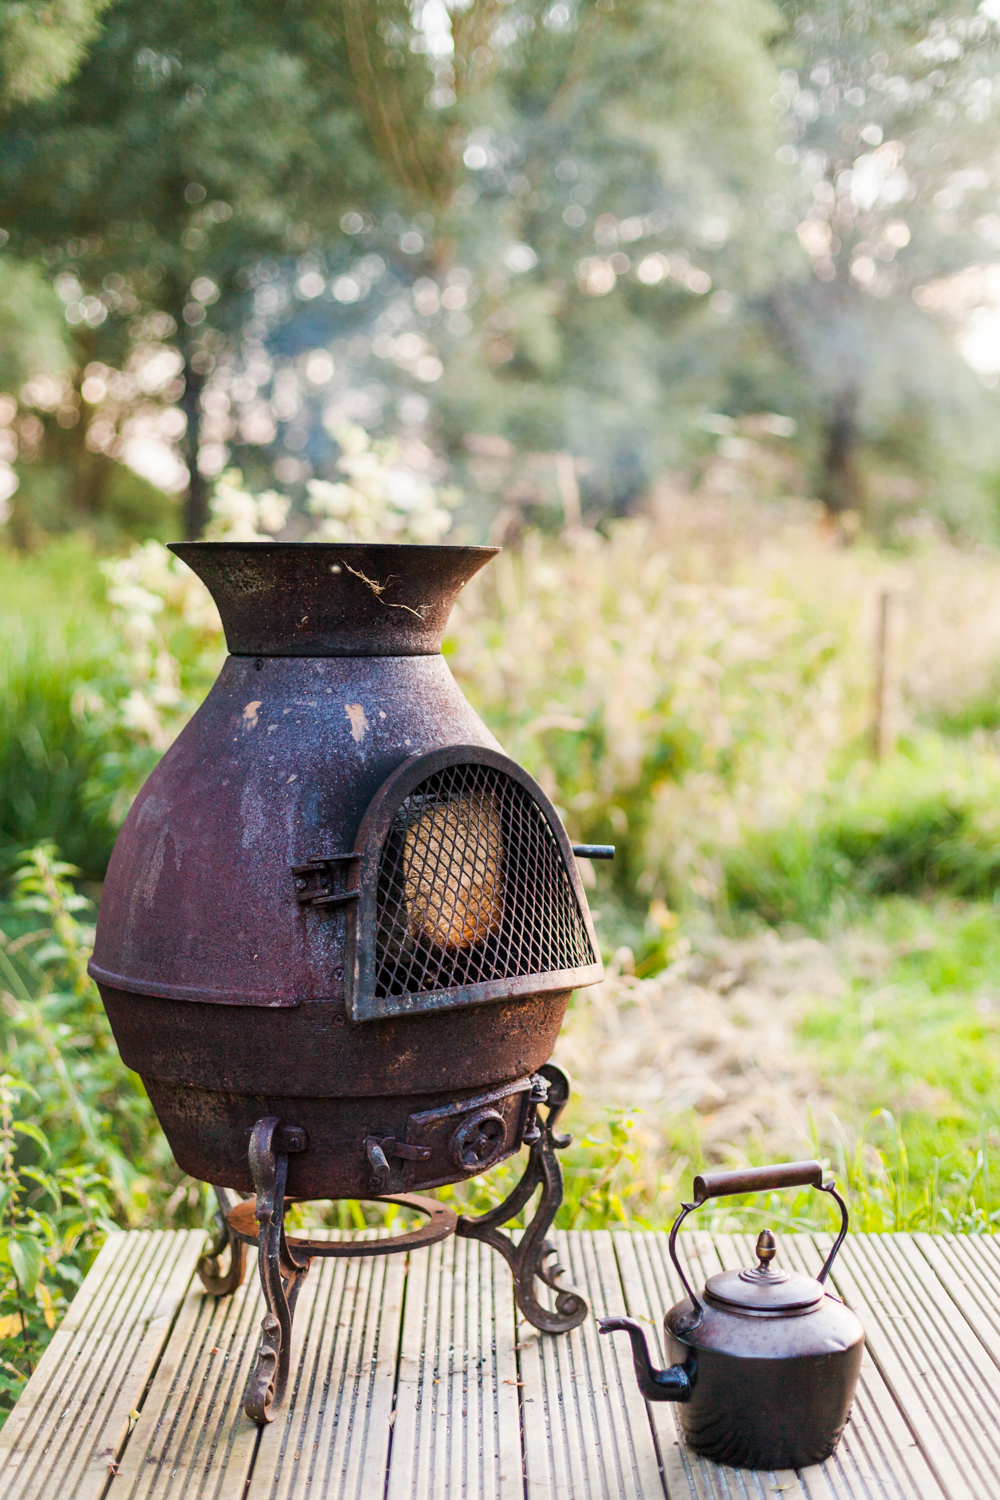 People love to know what there is to cook on and imagine themselves in the weeks running up to their holiday, cooking on that chiminea for example